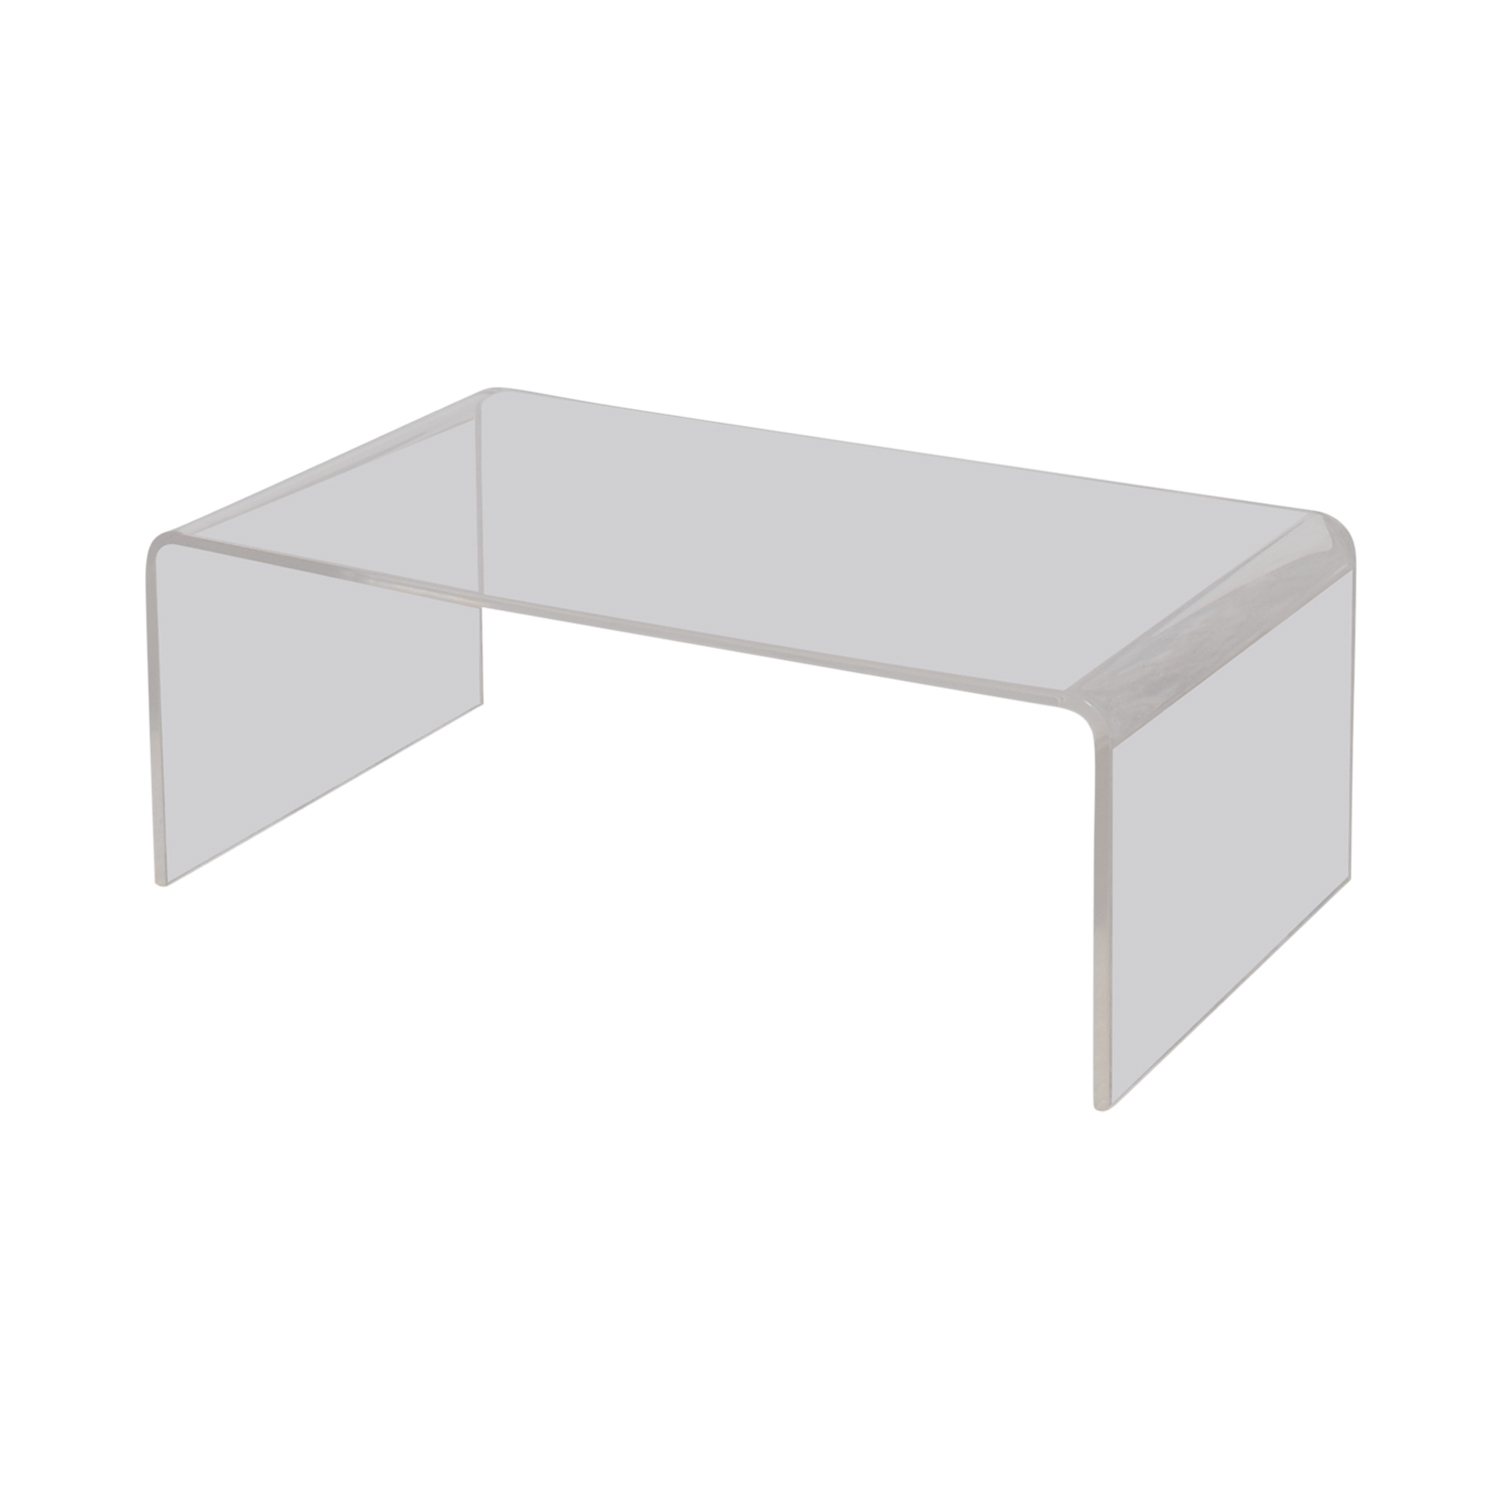 OFF CB2 CB2 Peekaboo Acrylic Coffee Table Tables